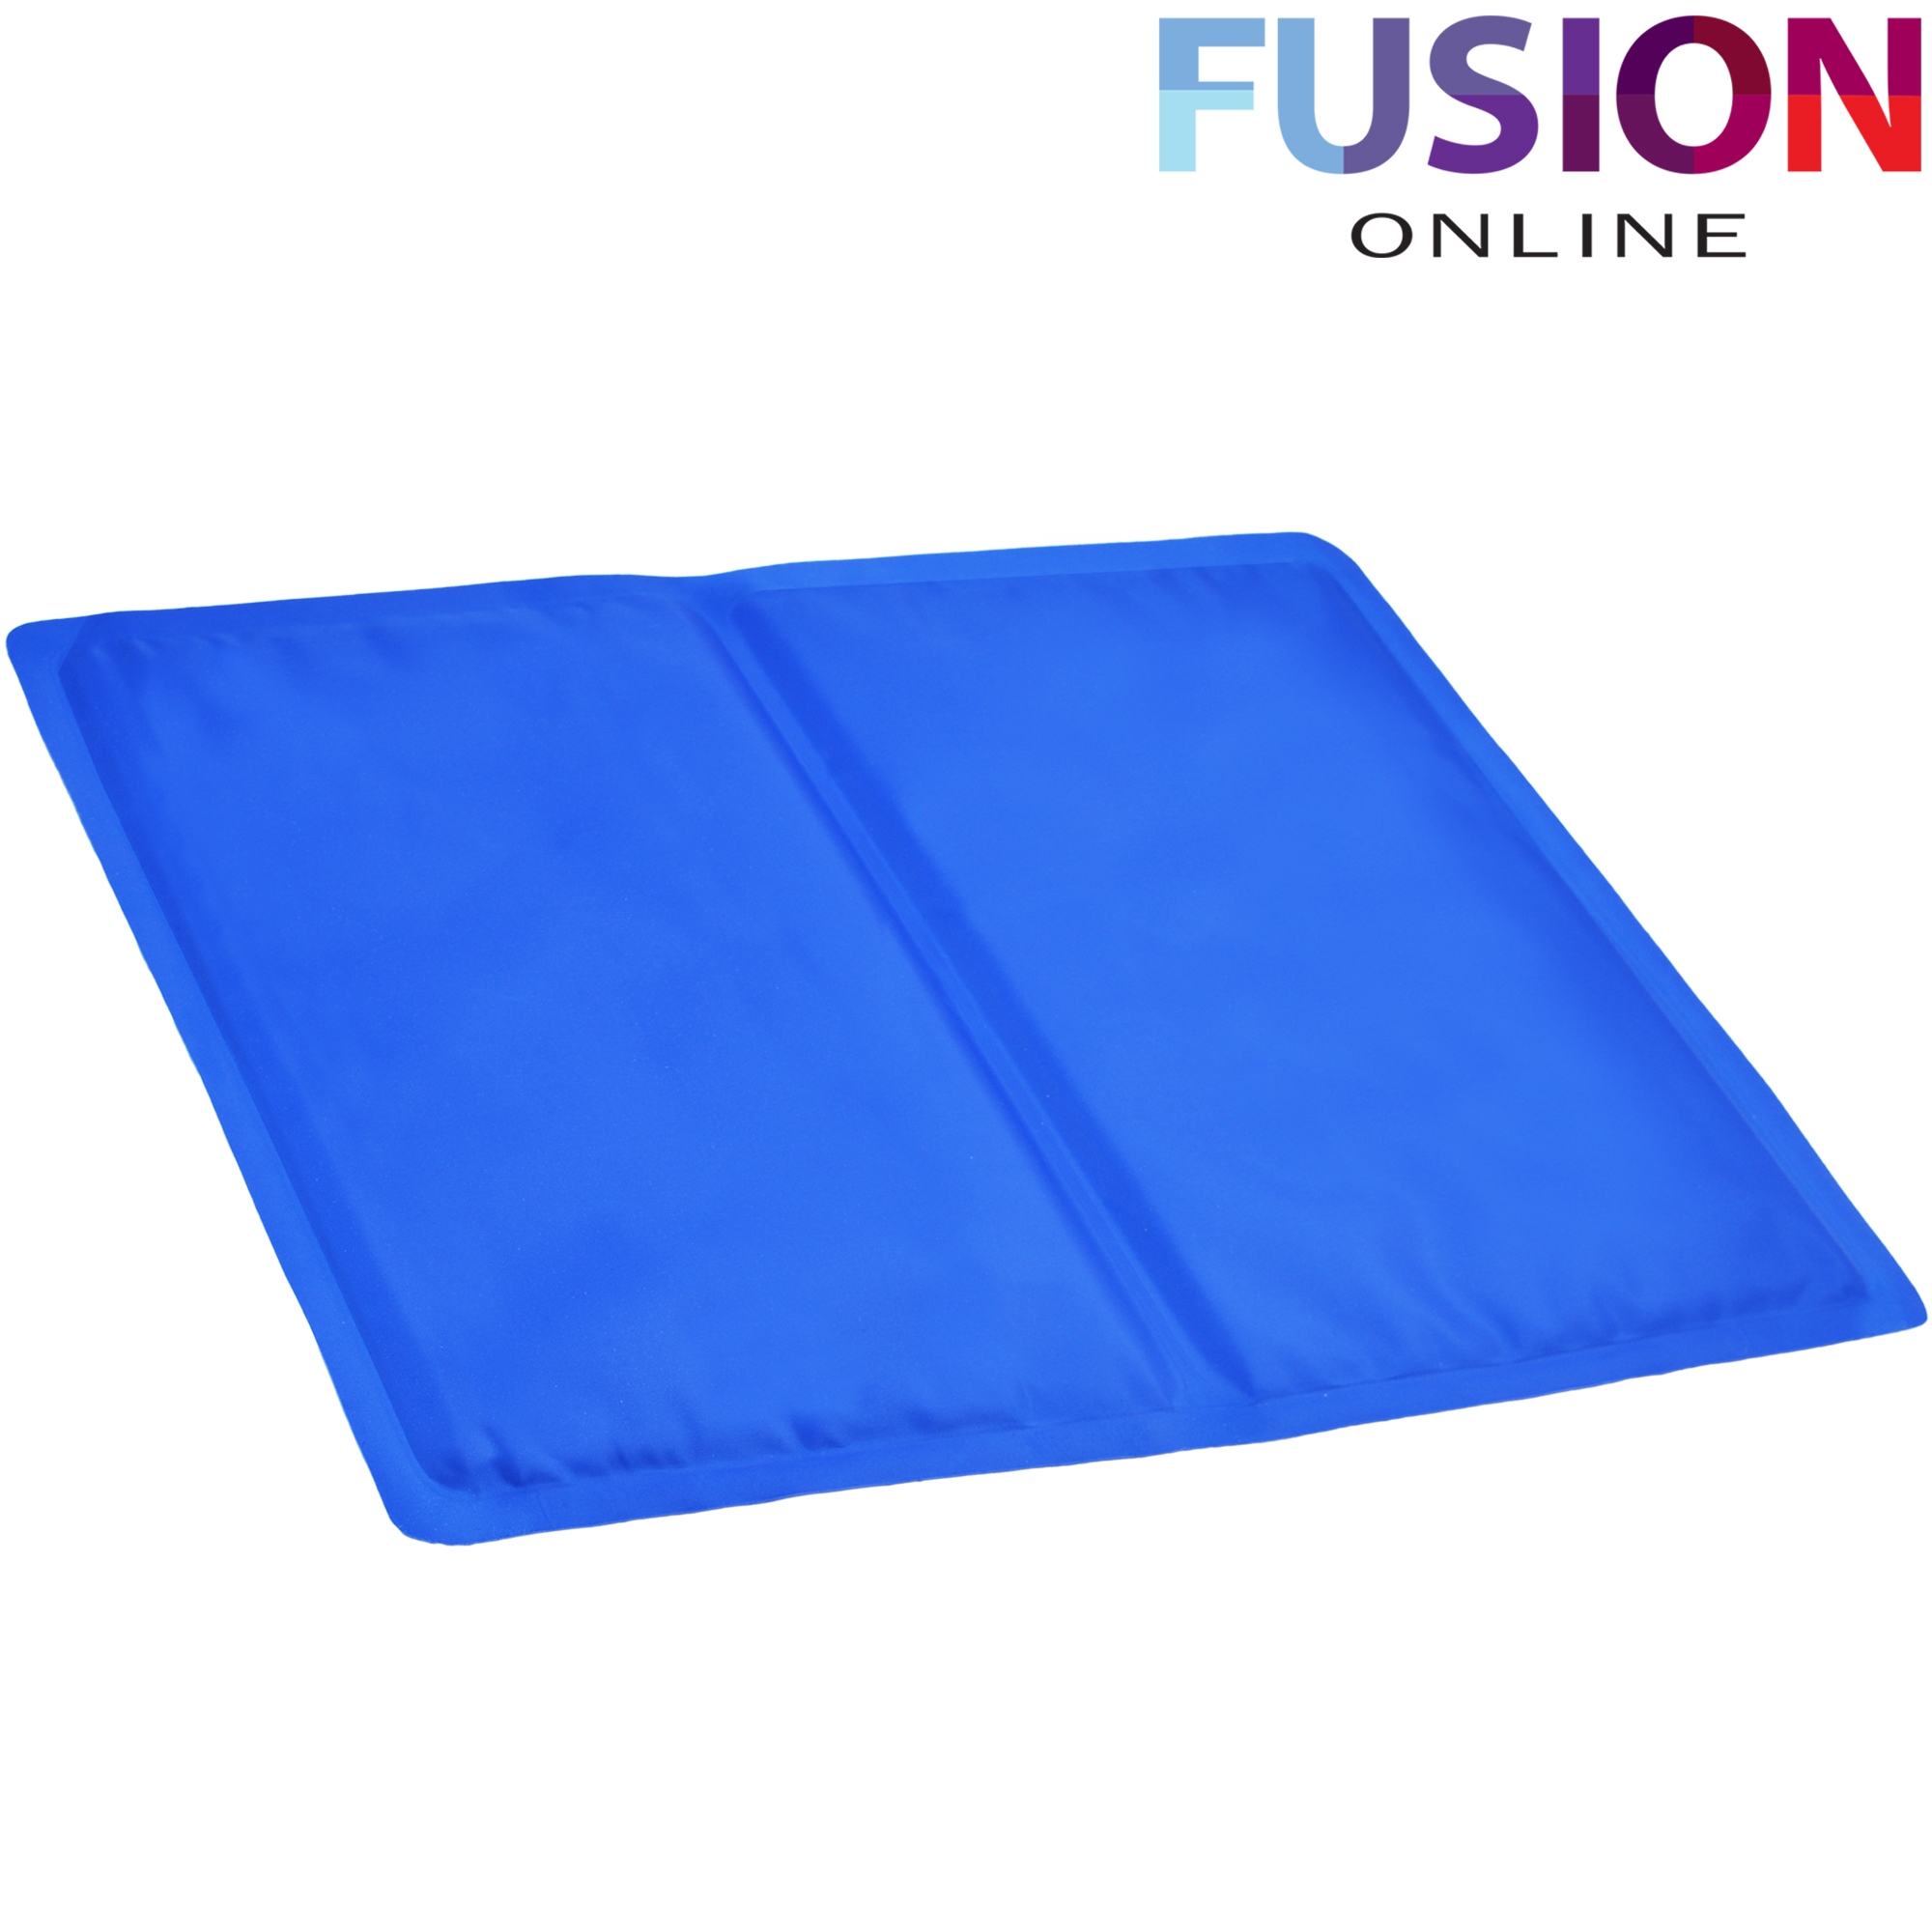 free pillow technogel neck sleep deep shipping cool decorative zero item from gel memory release pain in pillows pressure